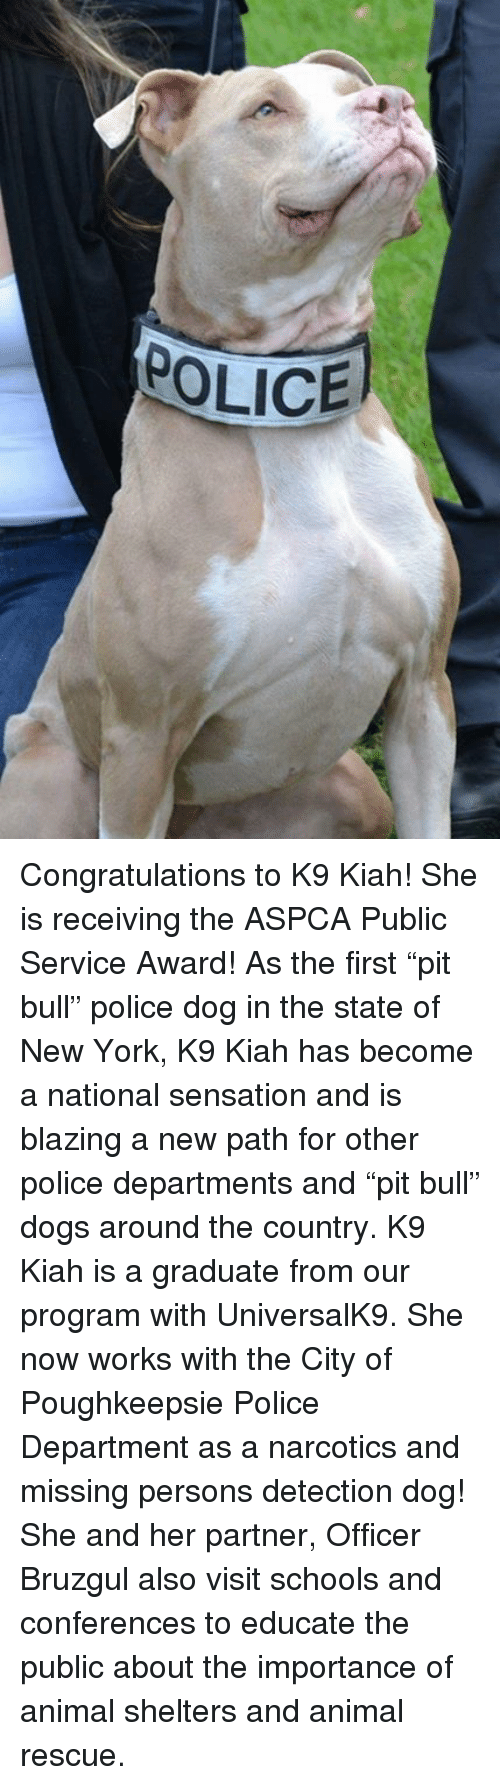 "Aspca: POLICE Congratulations to K9 Kiah! She is receiving the ASPCA Public Service Award! As the first ""pit bull"" police dog in the state of New York, K9 Kiah has become a national sensation and is blazing a new path for other police departments and ""pit bull"" dogs around the country.   K9 Kiah is a graduate from our program with UniversalK9. She now works with the City of Poughkeepsie Police Department as a narcotics and missing persons detection dog! She and her partner, Officer Bruzgul also visit schools and conferences to educate the public about the importance of animal shelters and animal rescue."